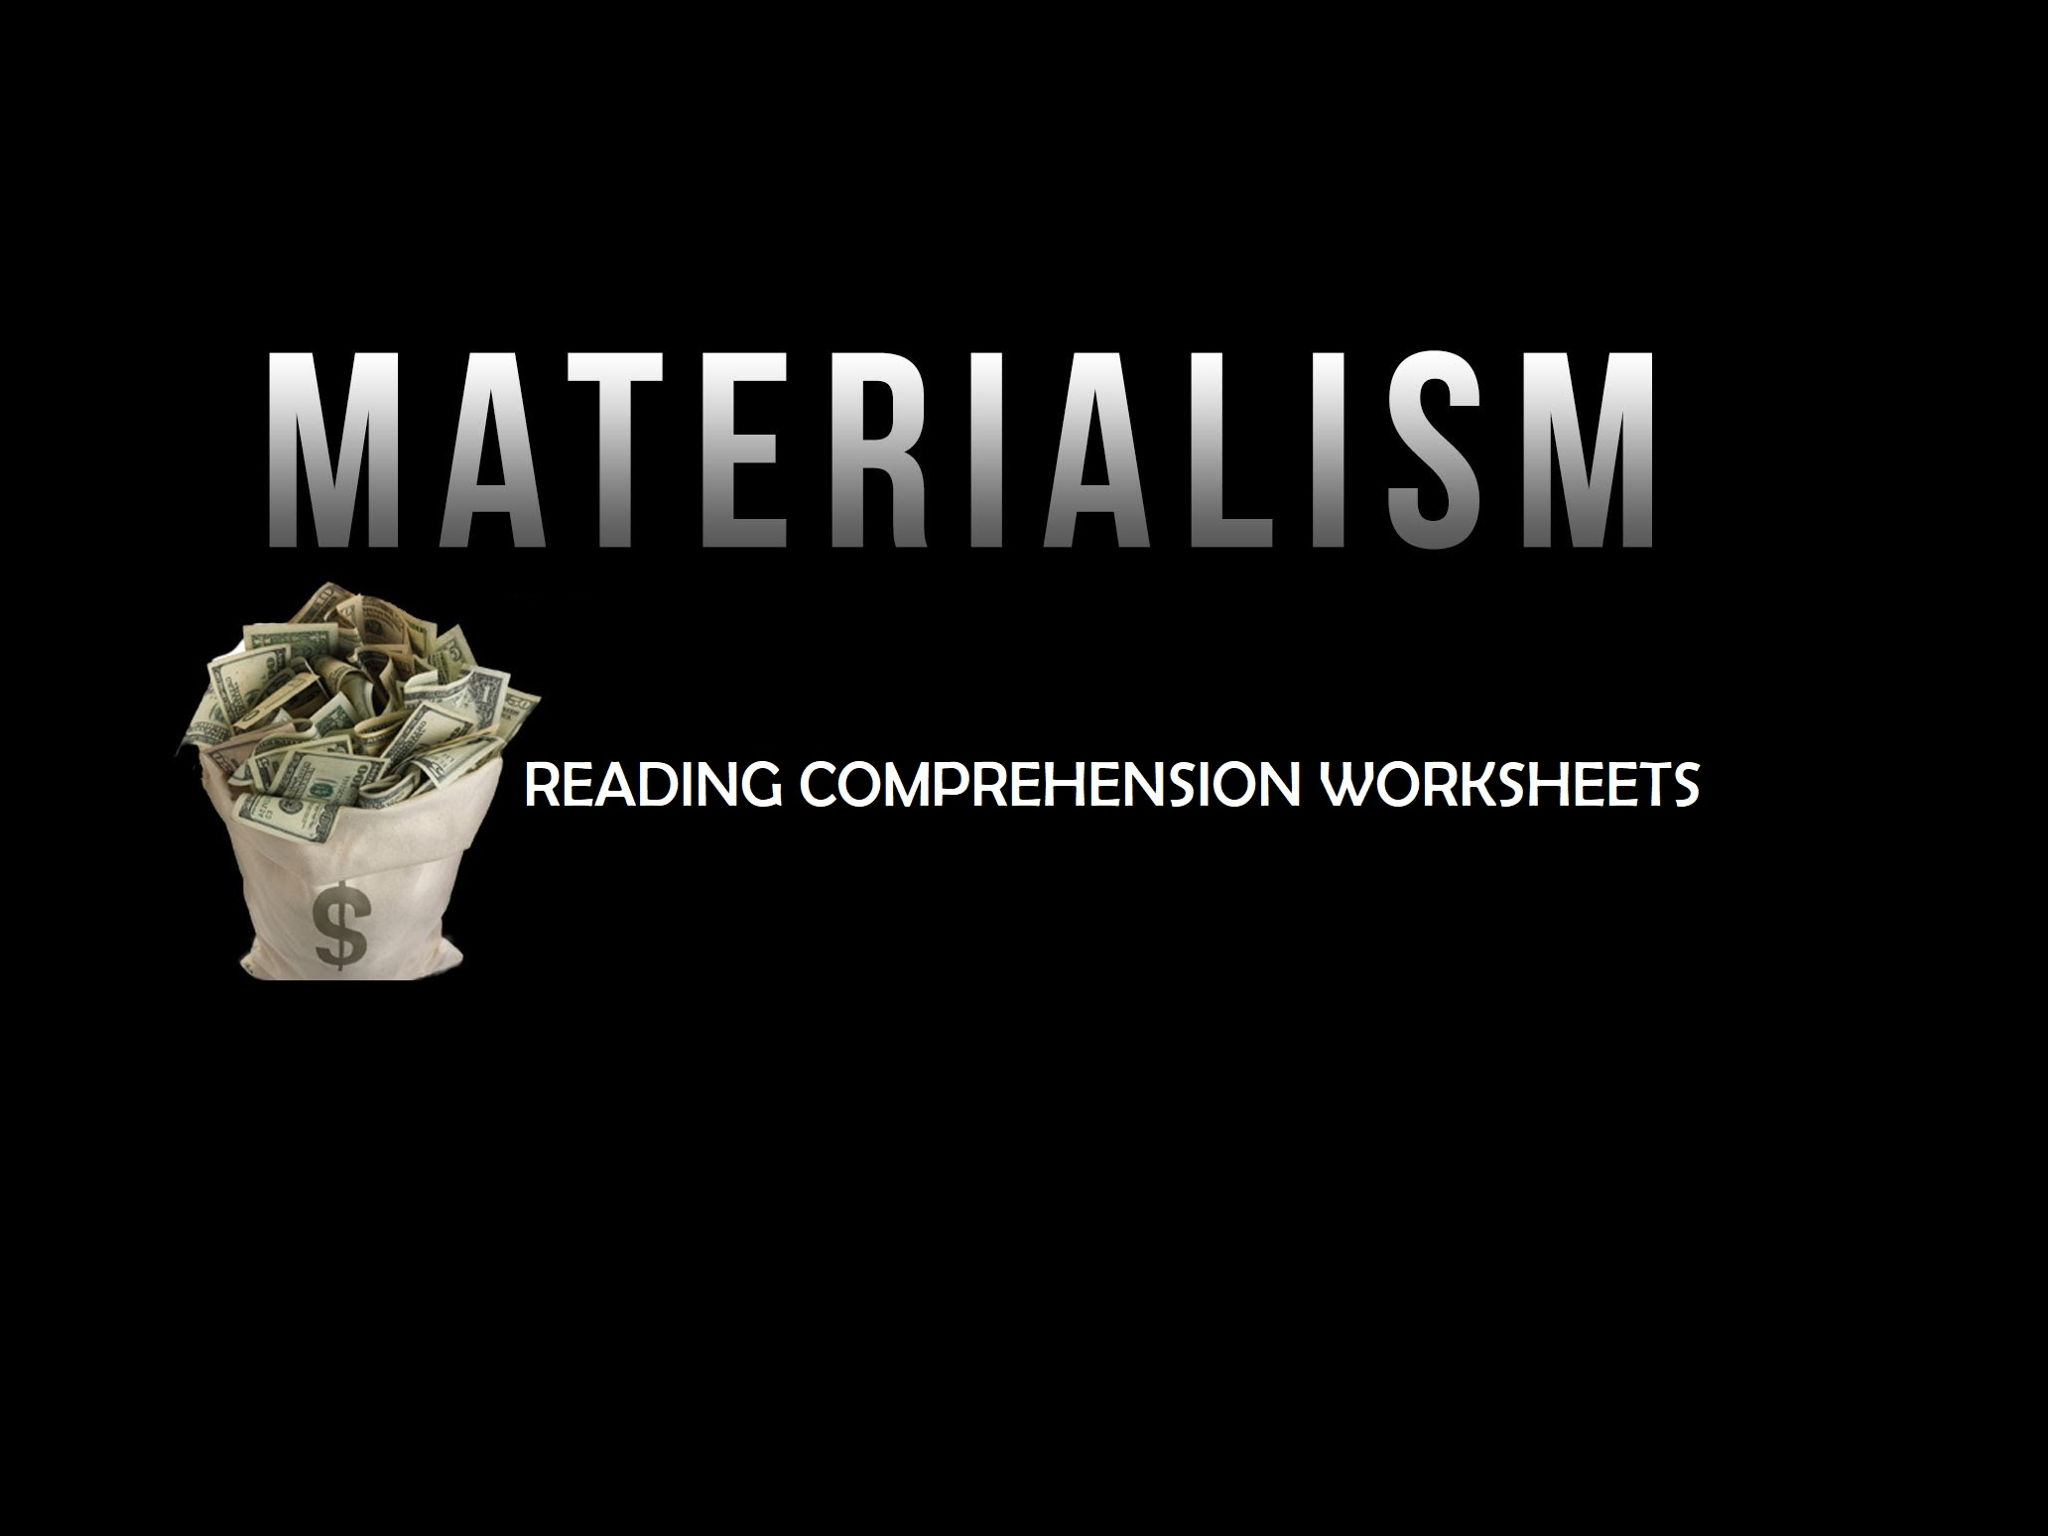 MATERIALISM - Reading Comprehension Worksheets (SAVE 55%)